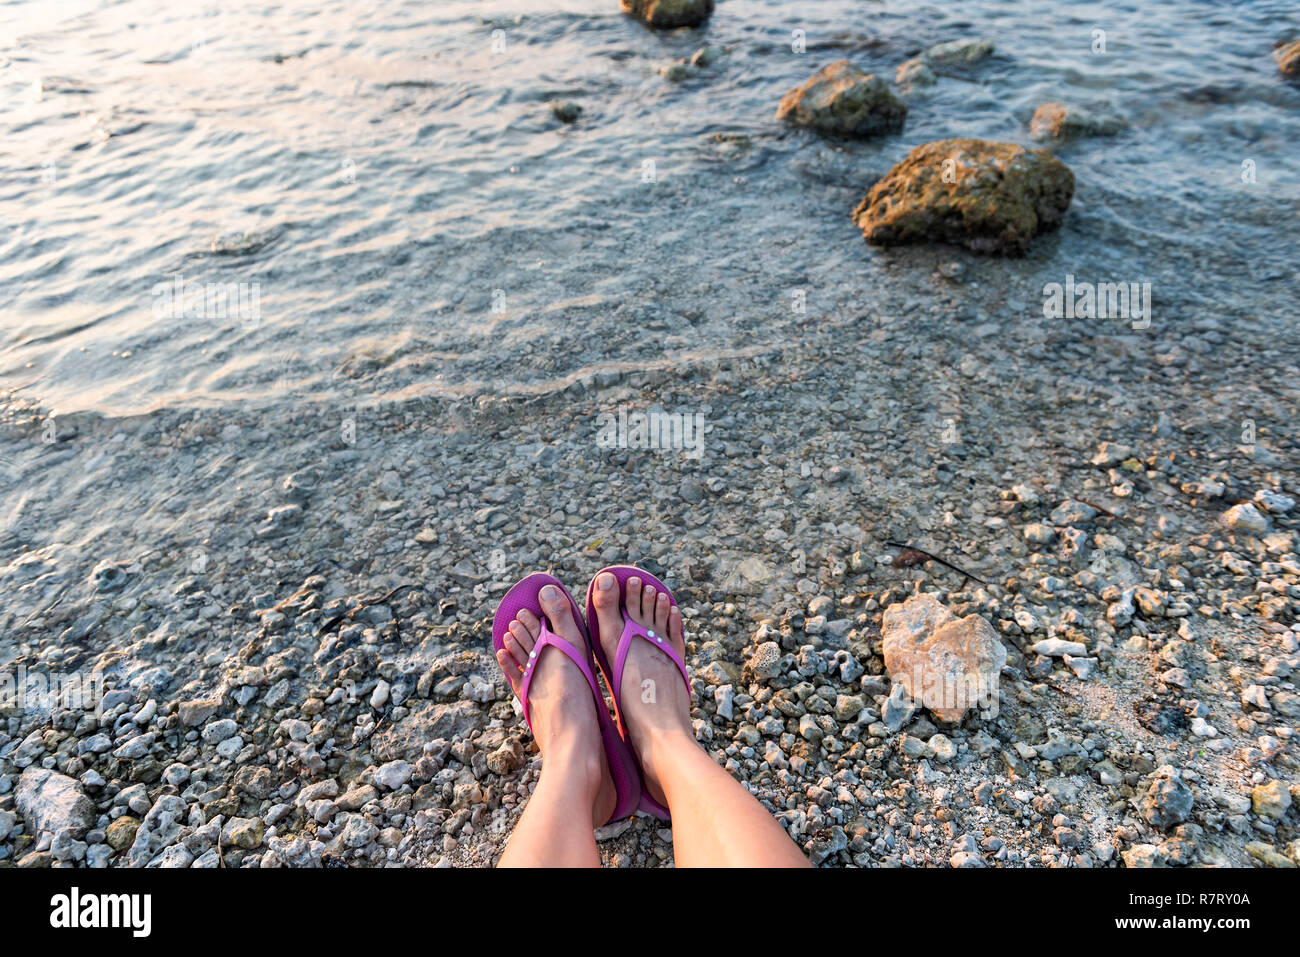 b2769b8665a1 Young woman looking down pov point of view perspective on feet flip-flops  sandals sitting